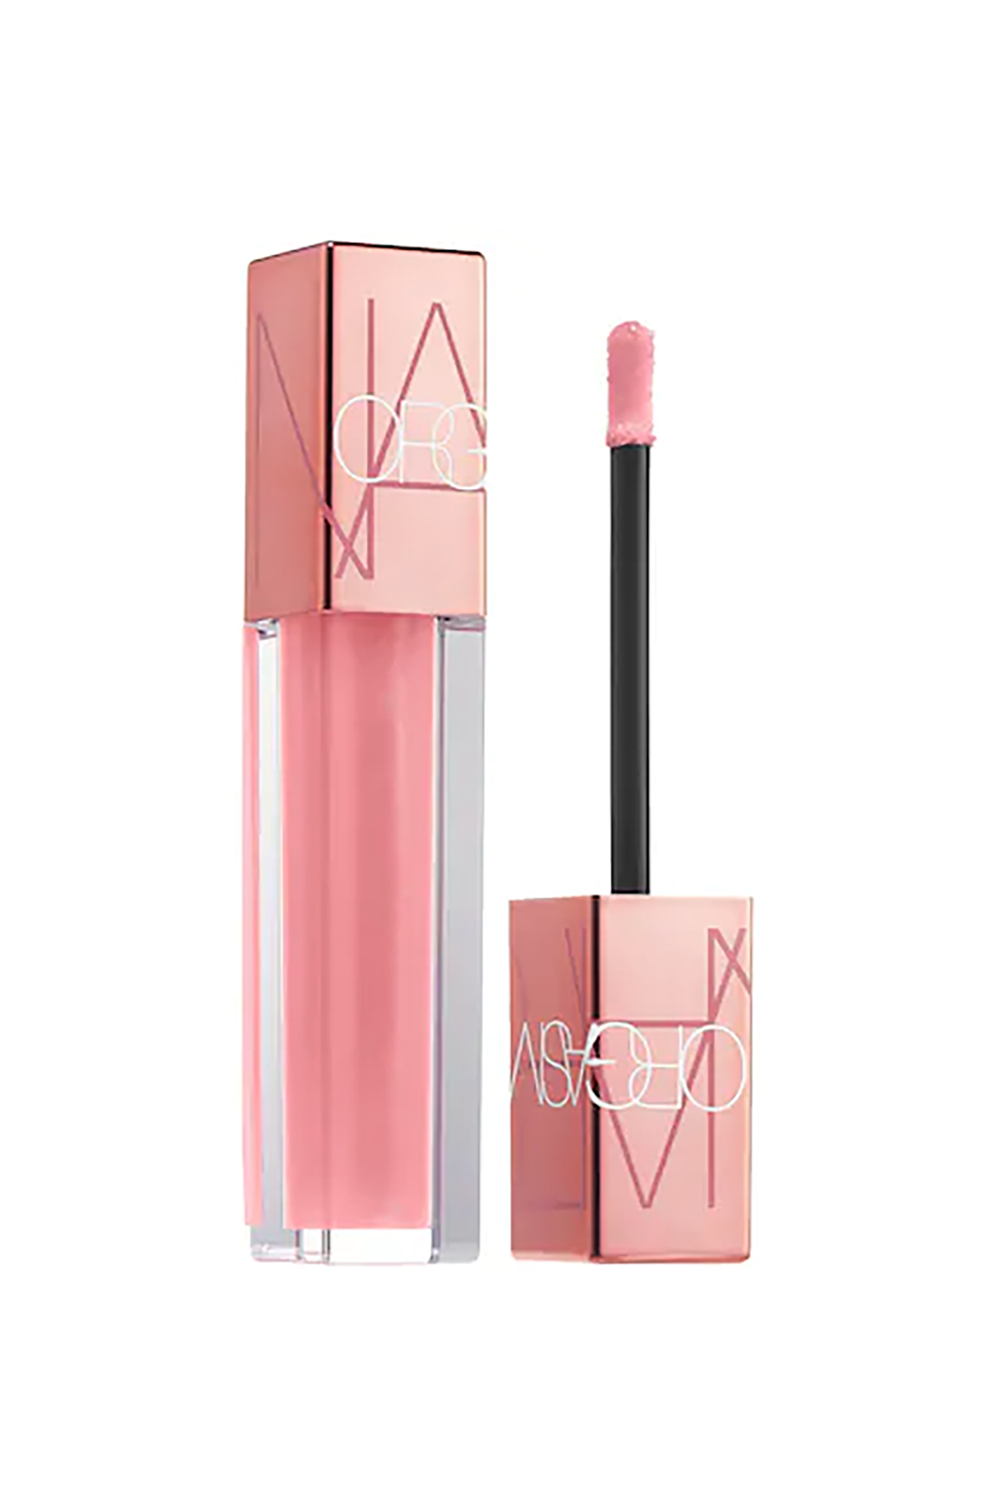 Peachy Pink NARS Orgasm Oil-Infused Lip Tint, $26 SHOP IT This bad boy does not disappoint in the shine category. The extra glossy texture is made up of raspberry seed oil and pomegranate extract, so it conditions the lips with moisture.